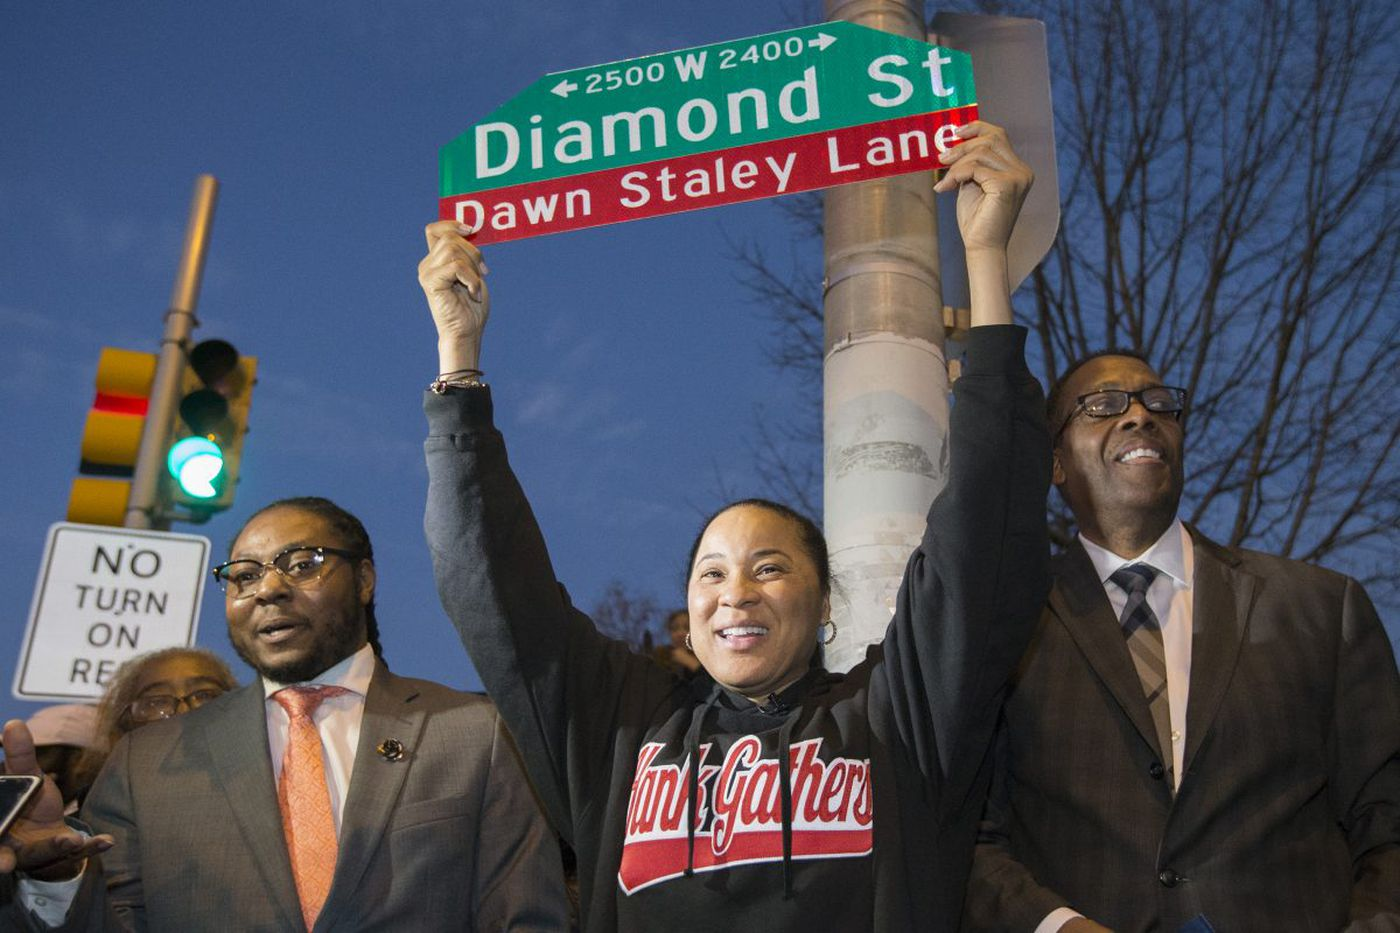 As Dawn Staley comes home to North Philly, 25th and Diamond is renamed Dawn Staley Lane | Mike Jensen